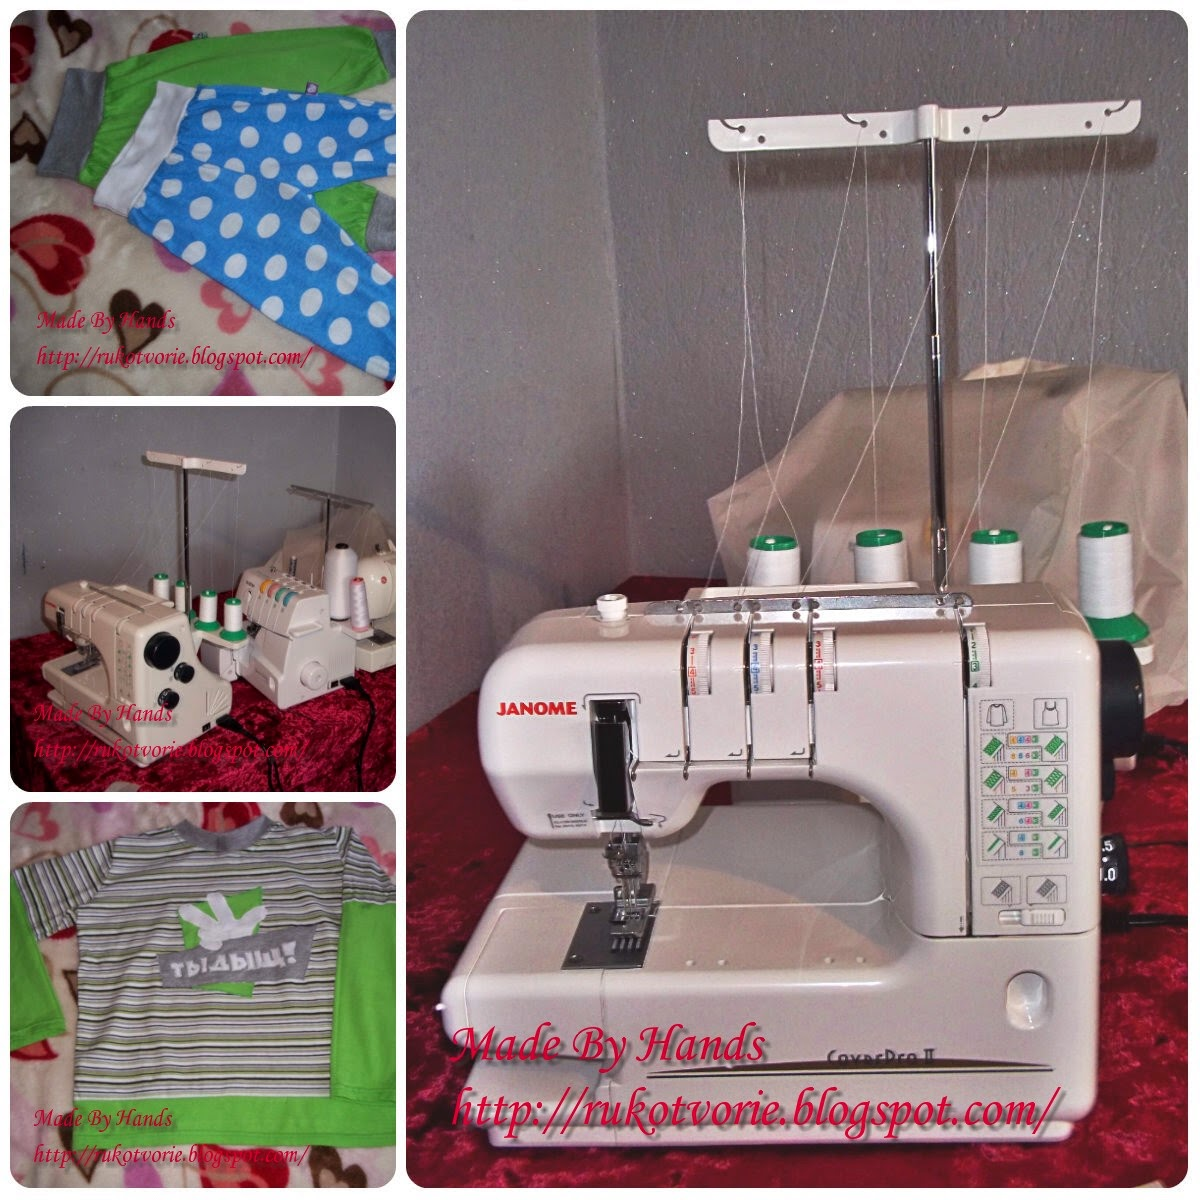 Janome CP 2 отзывы